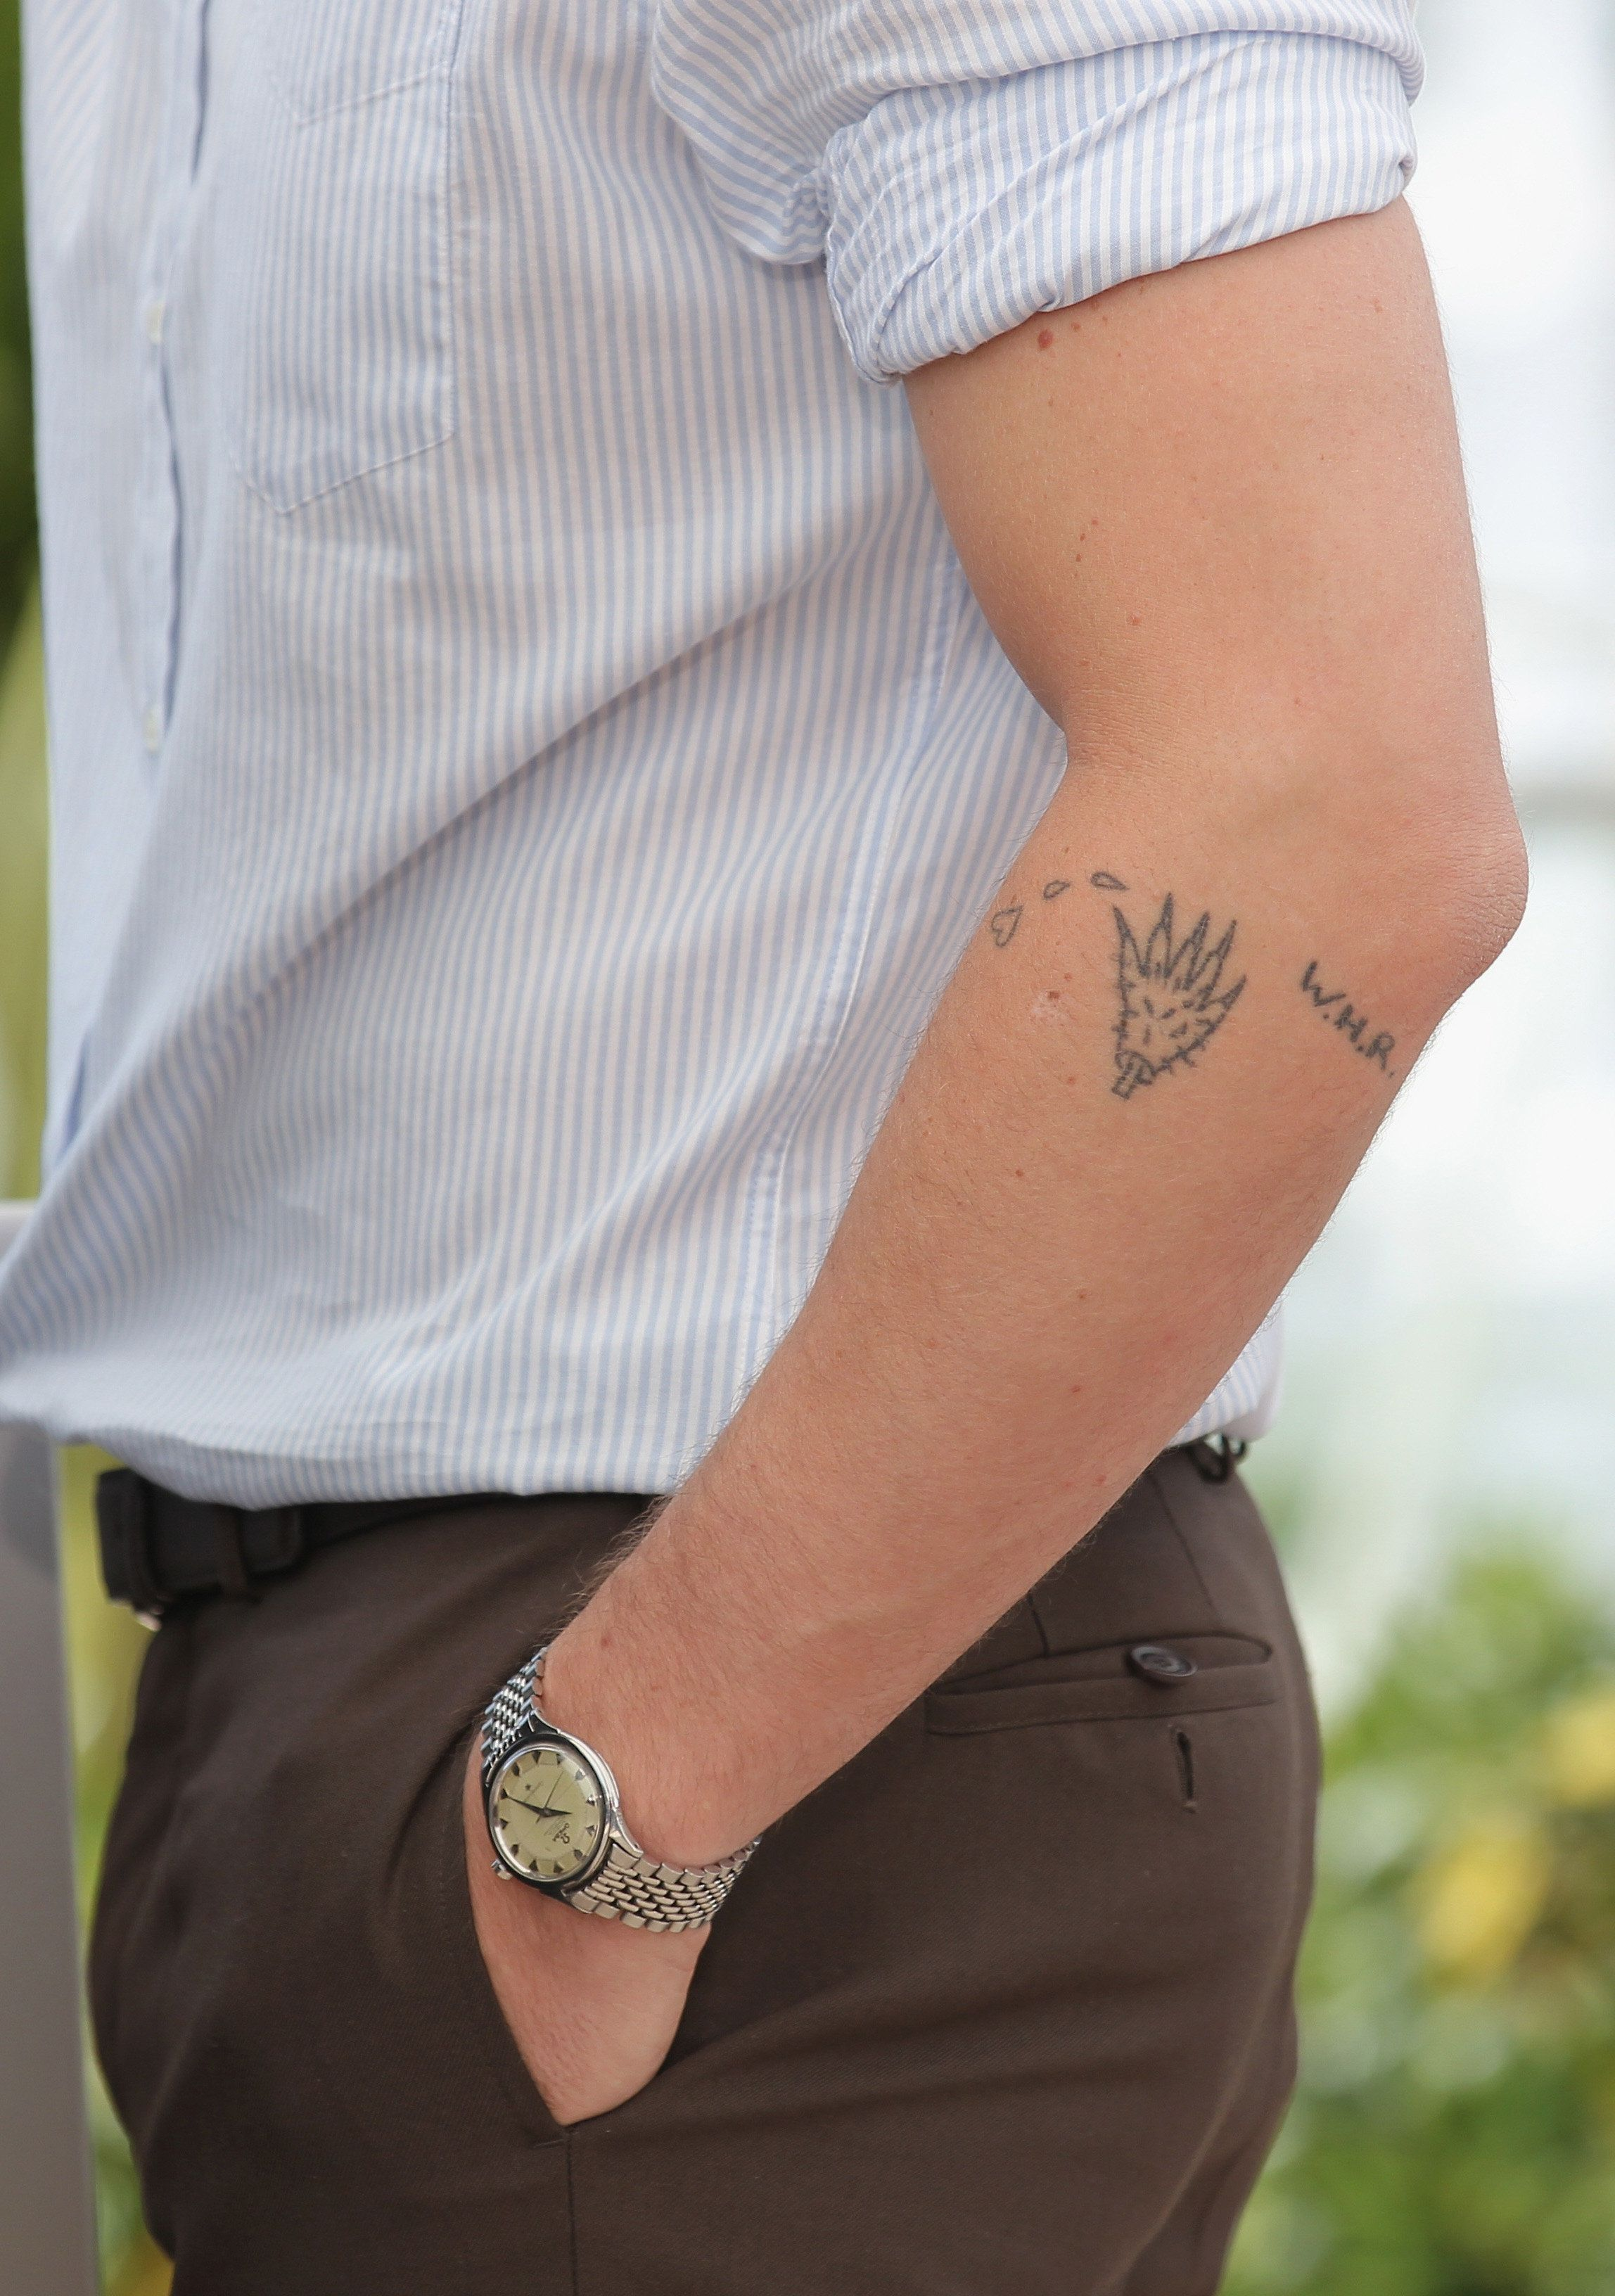 26 Tiny Tattoos For Guys To Sneak Onto Their Bodies Huffpost Life